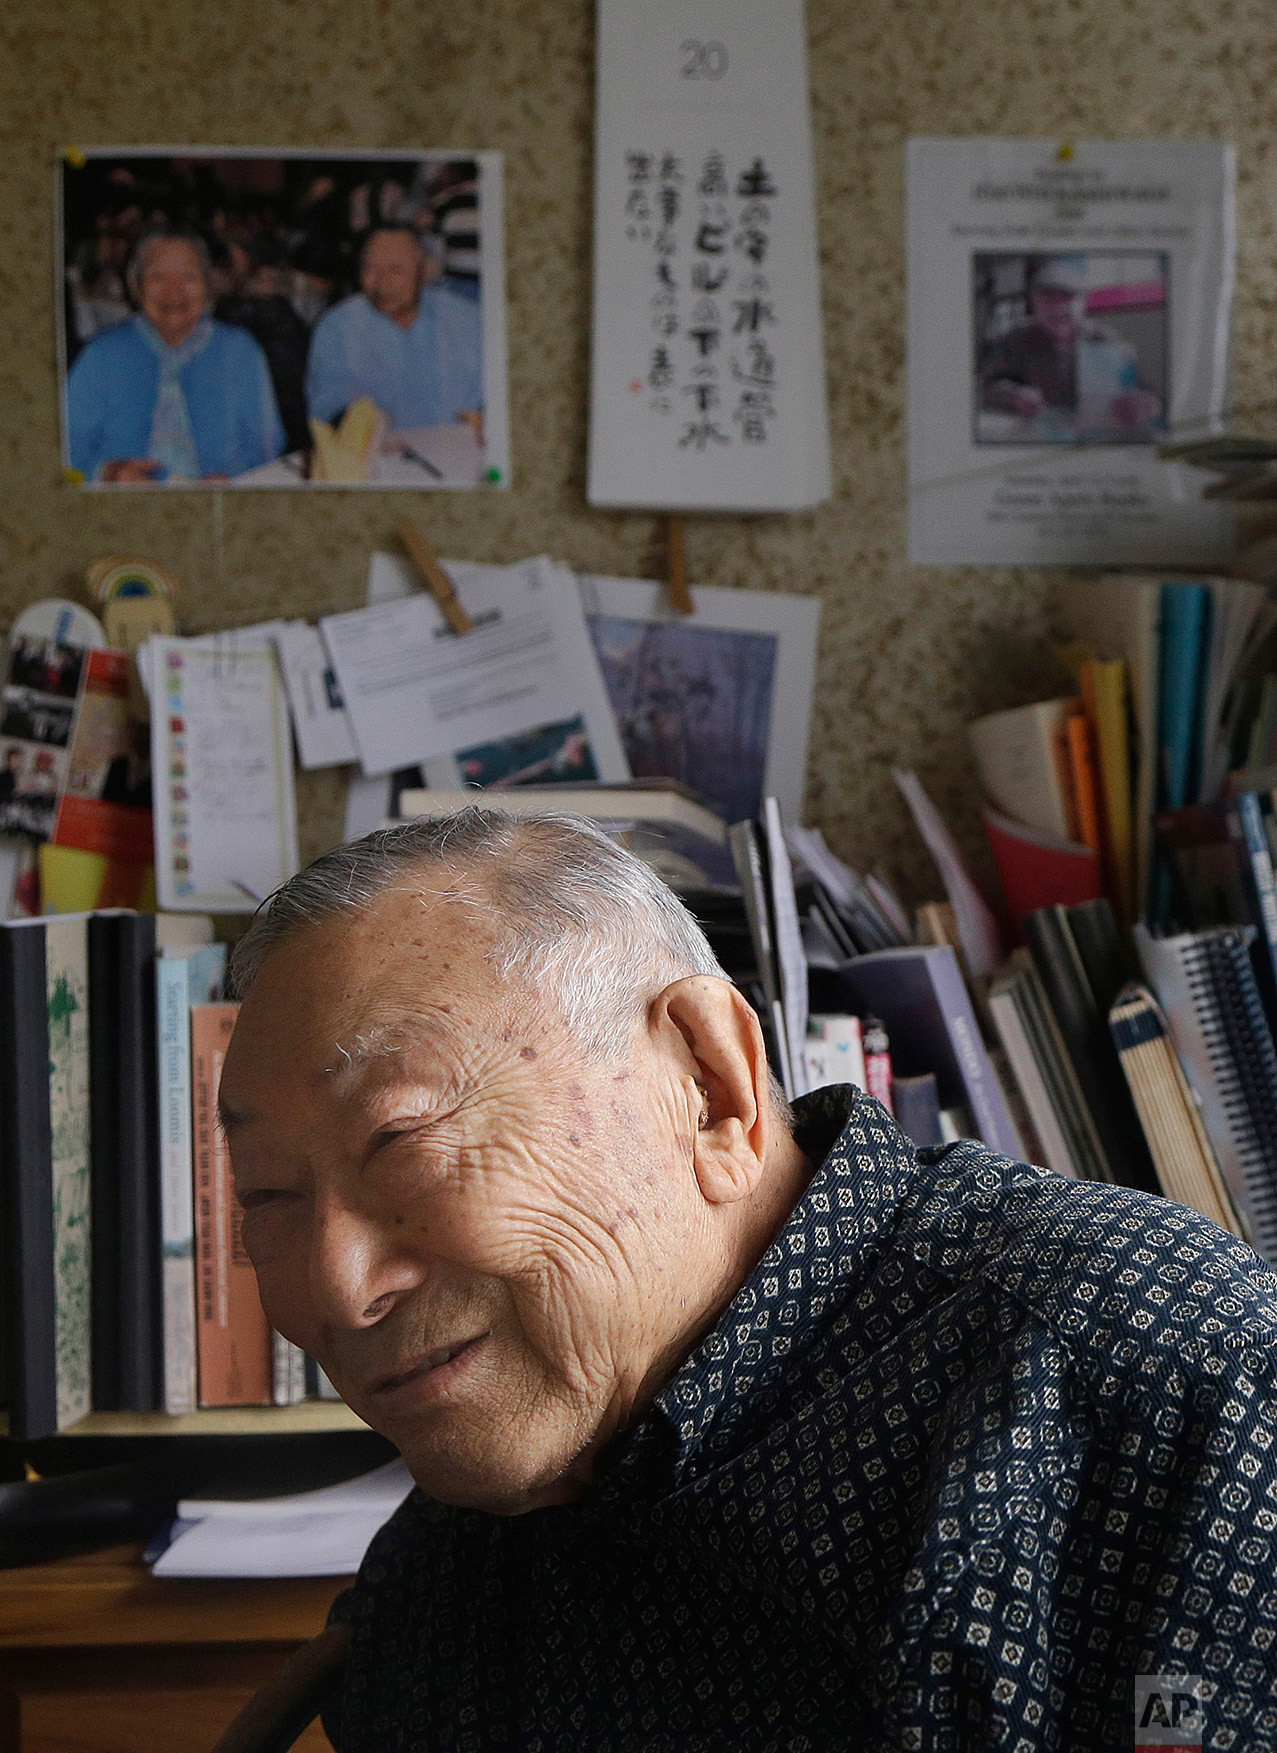 In this Feb. 10, 2017 photo, Hiroshi Kashiwagi speaks during an interview at his home in San Francisco. Kashiwagi was 19 when his family was ordered from their home in Northern California's Placer County and to a temporary detention center during World War II. (AP Photo/Jeff Chiu)